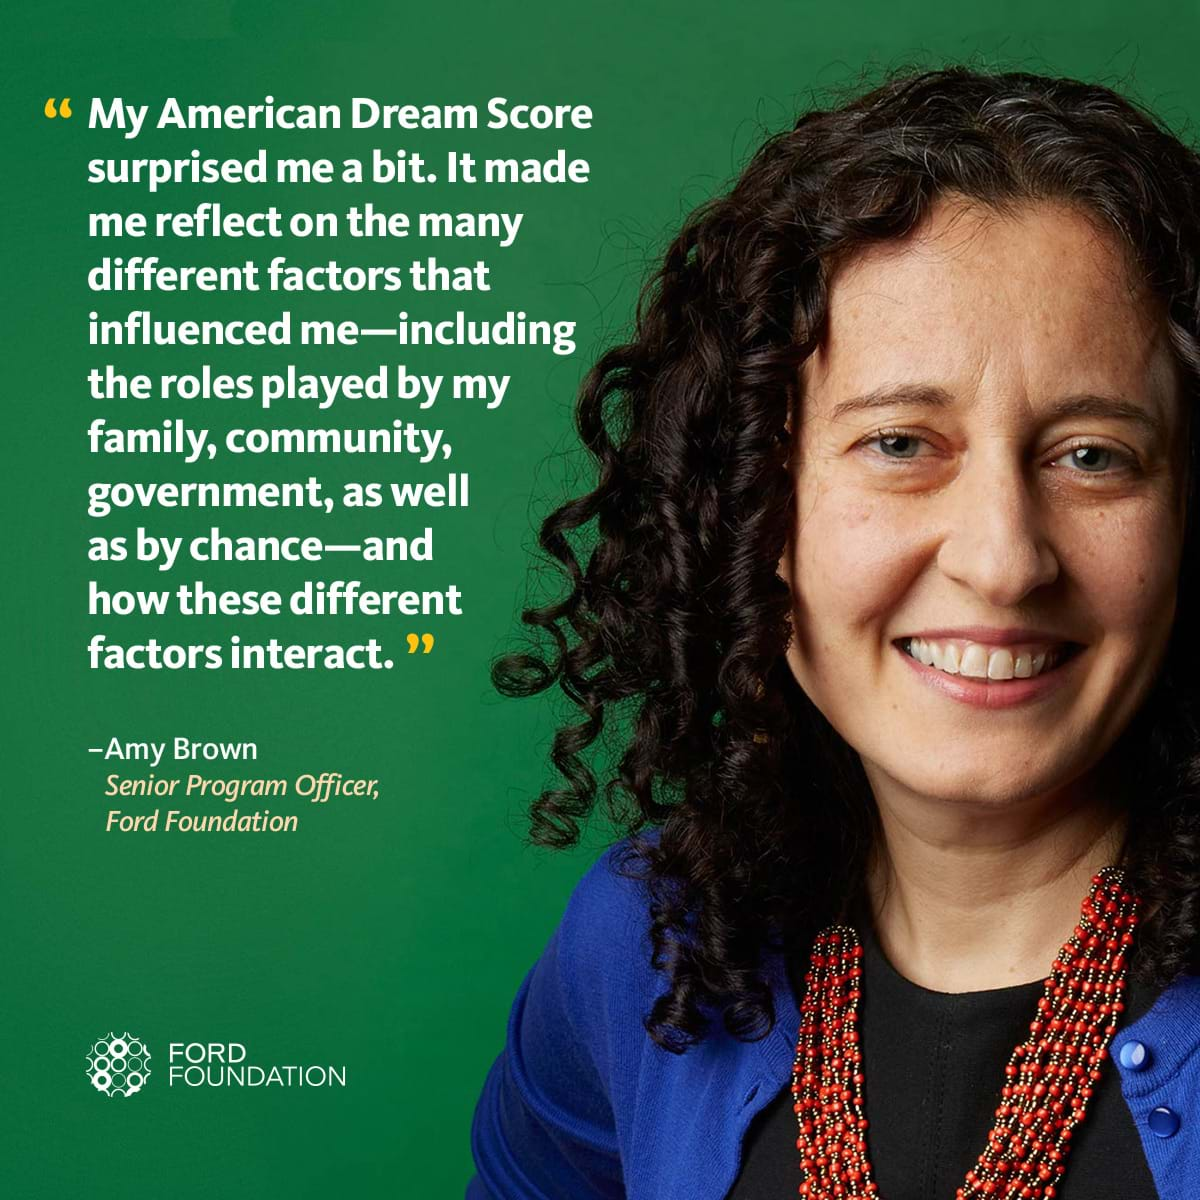 Photo of Amy Brown with a quote about her American Dream Score